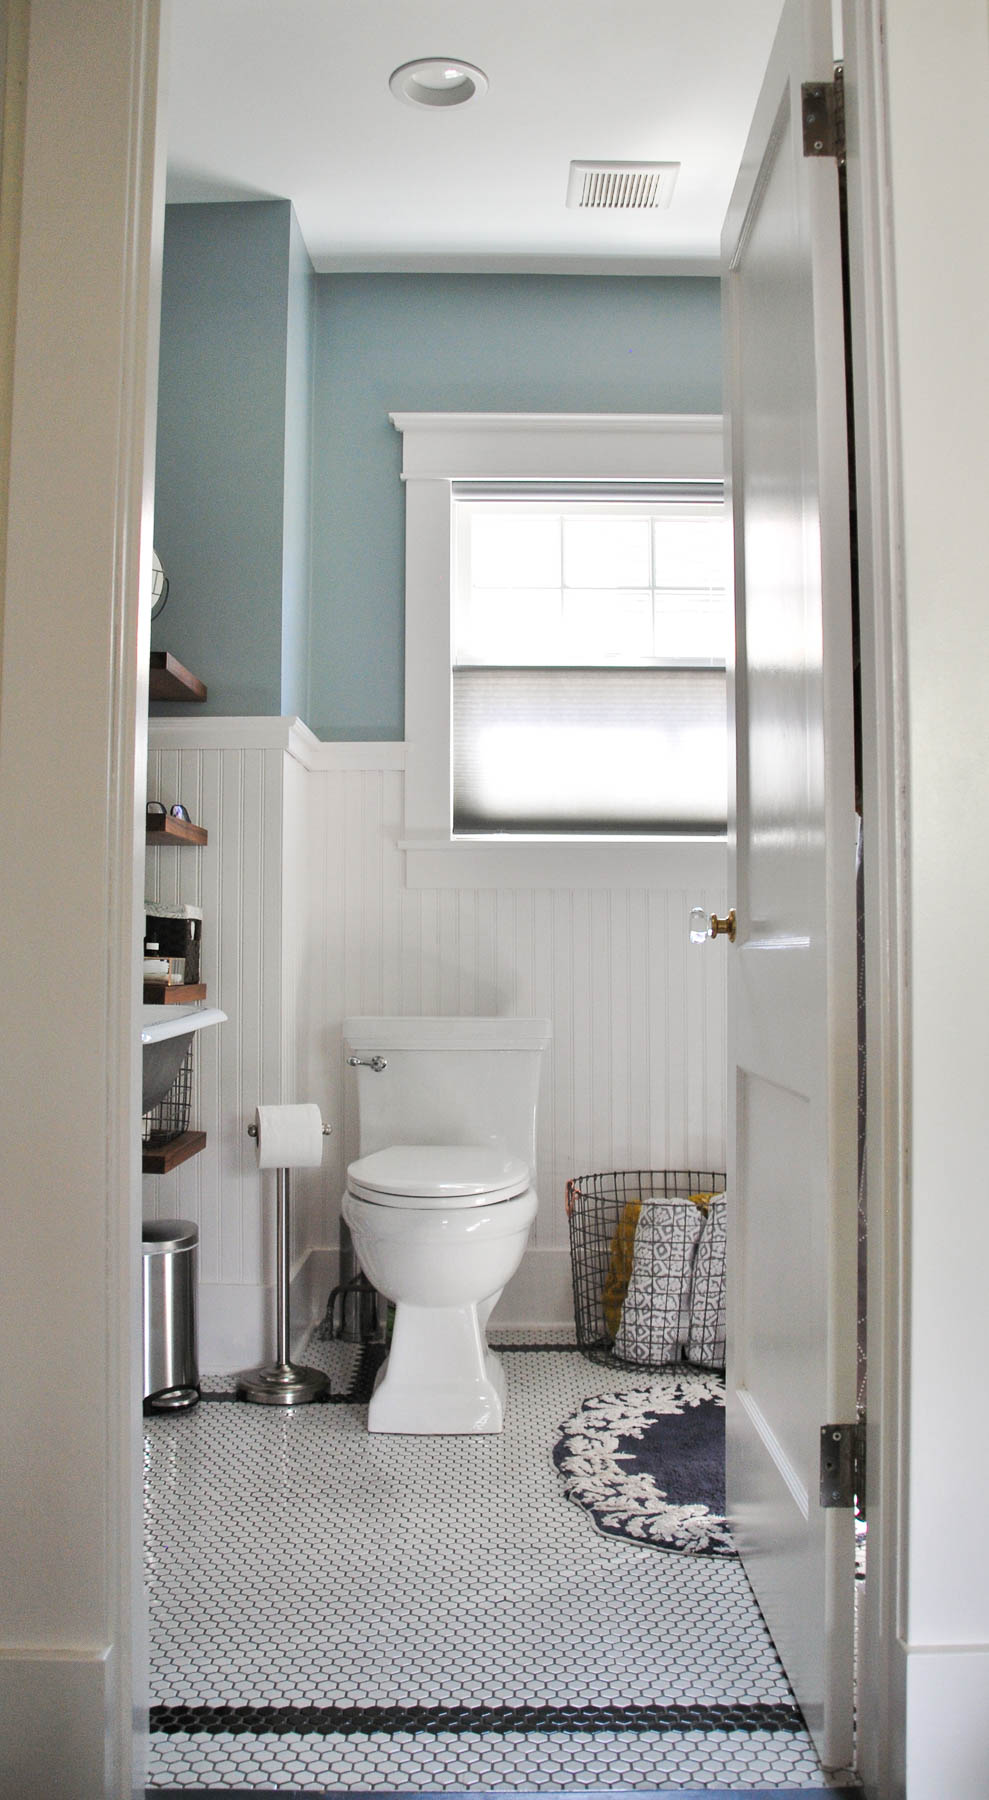 Bathroom renovation before and after shellymade How long does a bathroom renovation take